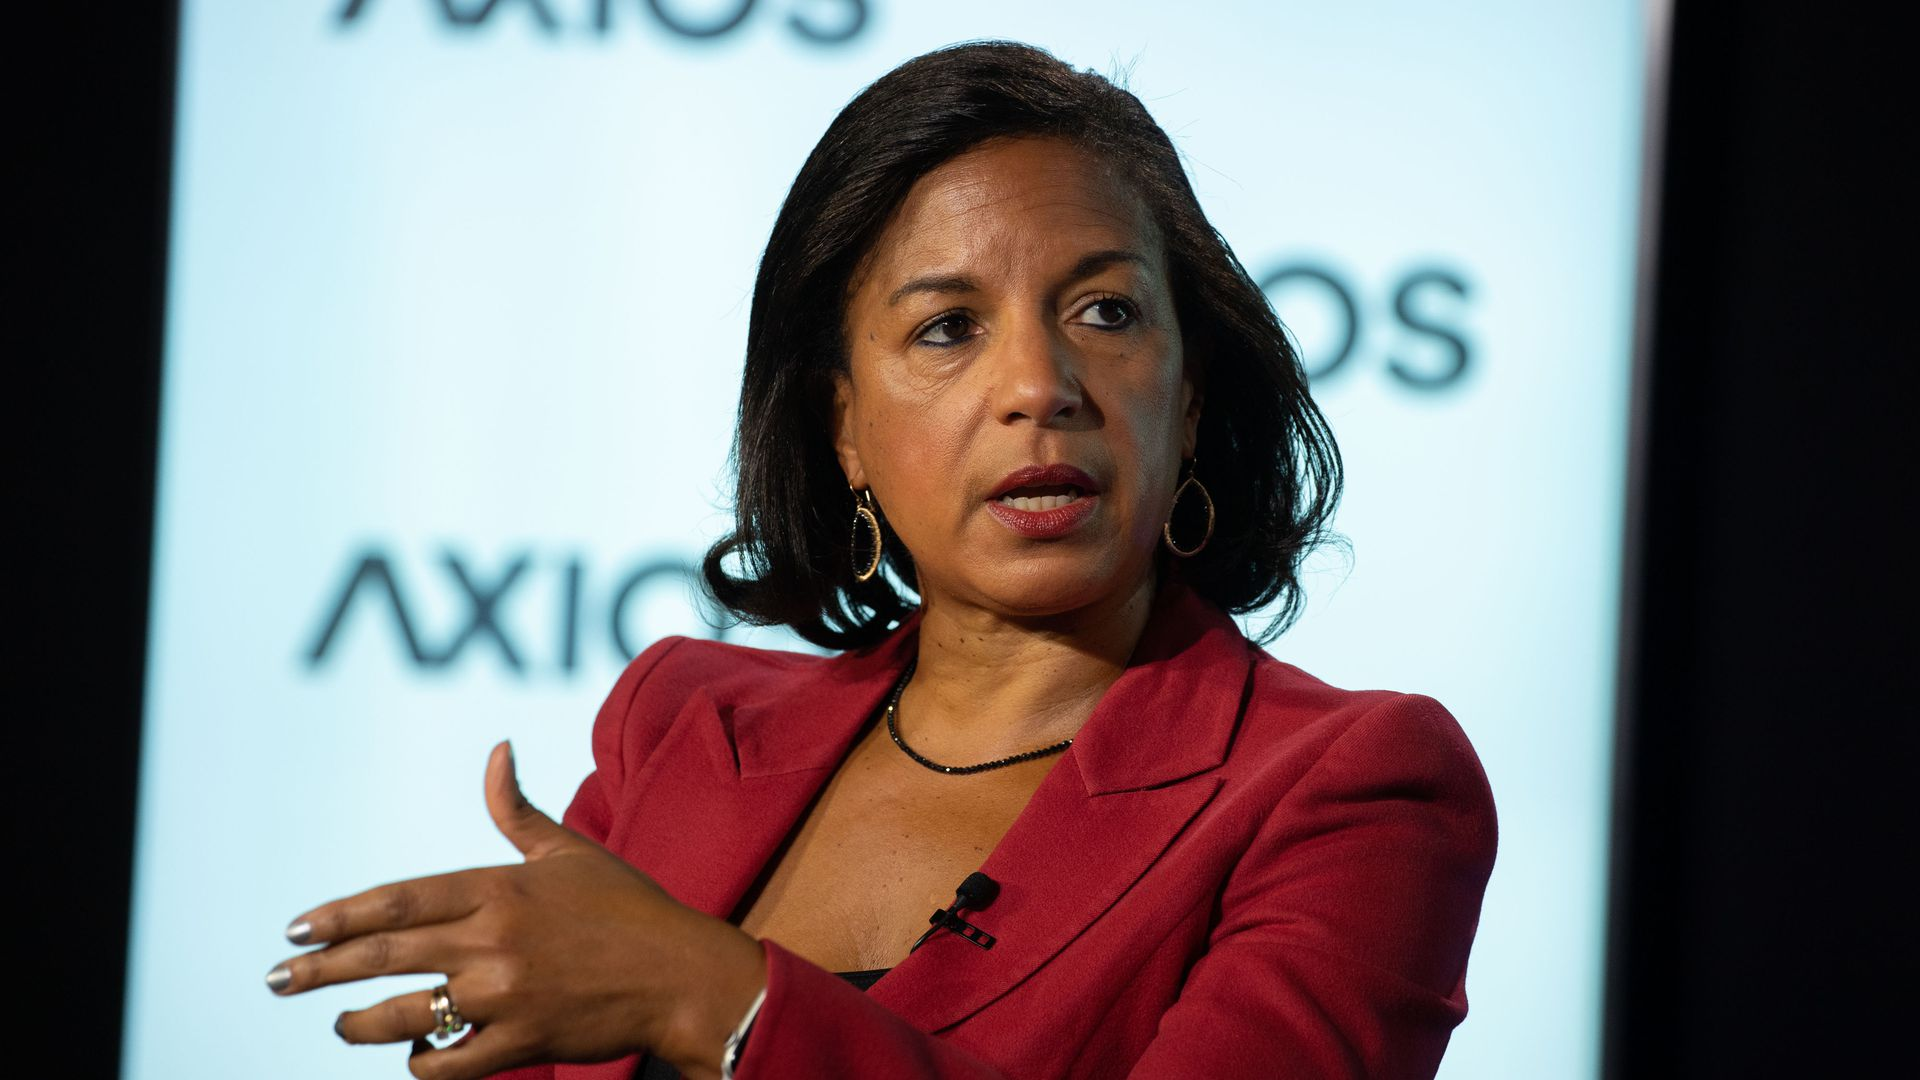 Former United States Ambassador to the United Nations, Susan Rice on the Axios stage.